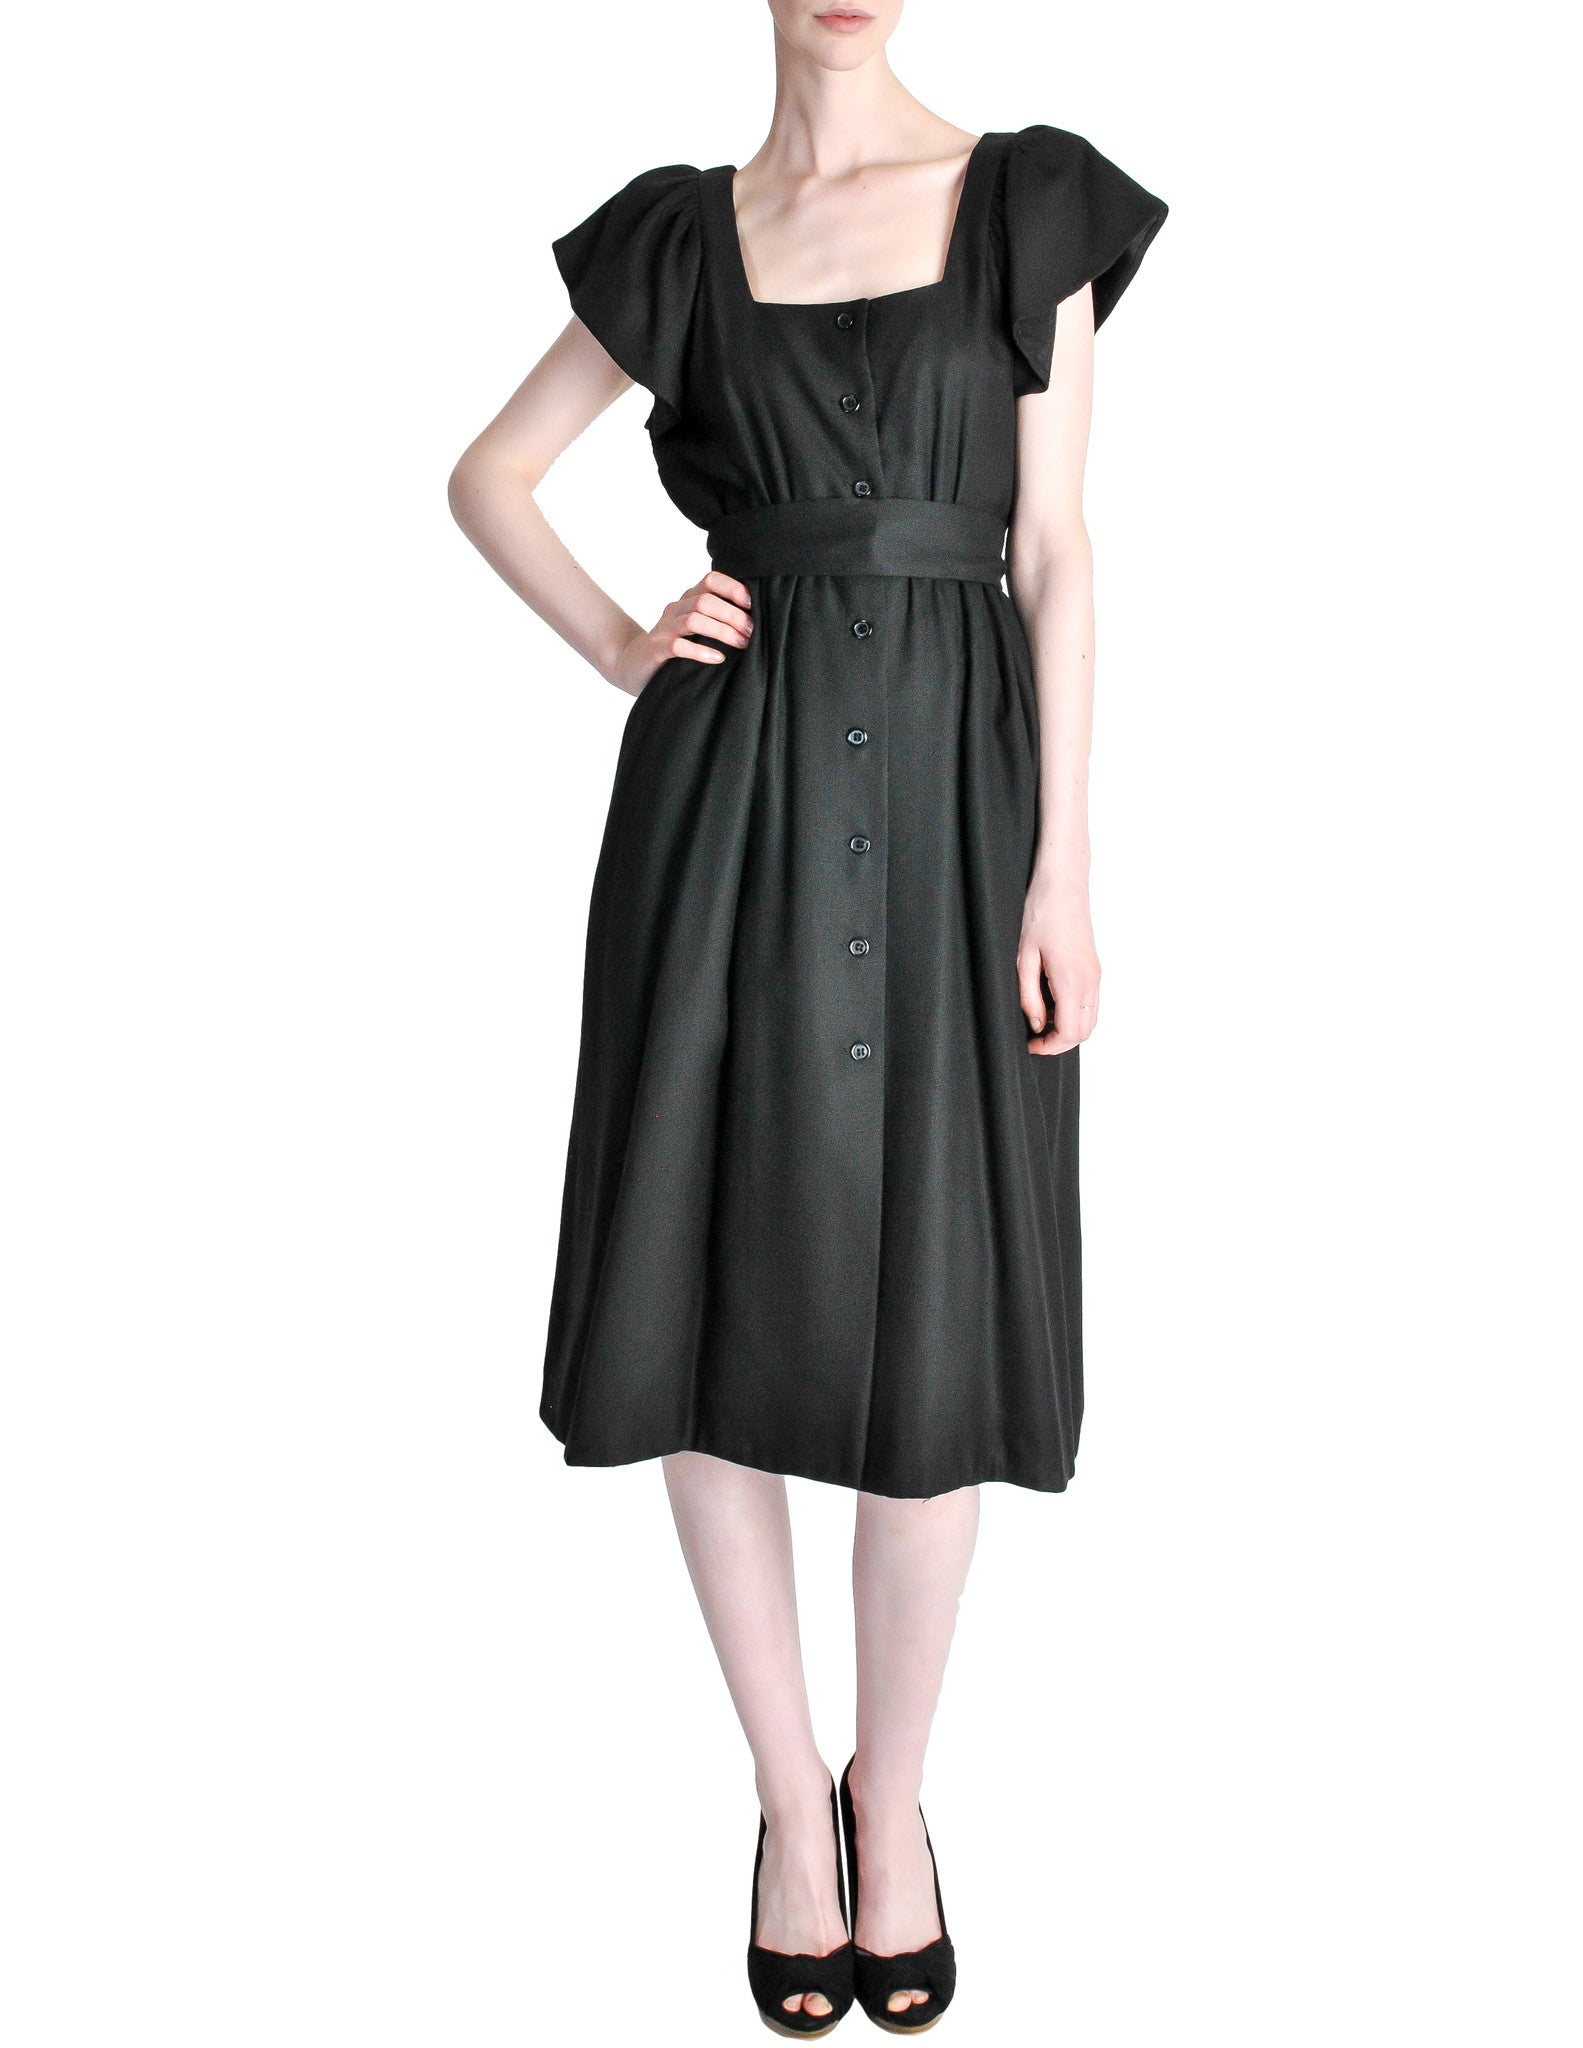 Halston Vintage Black Linen Button Up Dress - Amarcord Vintage Fashion  - 1